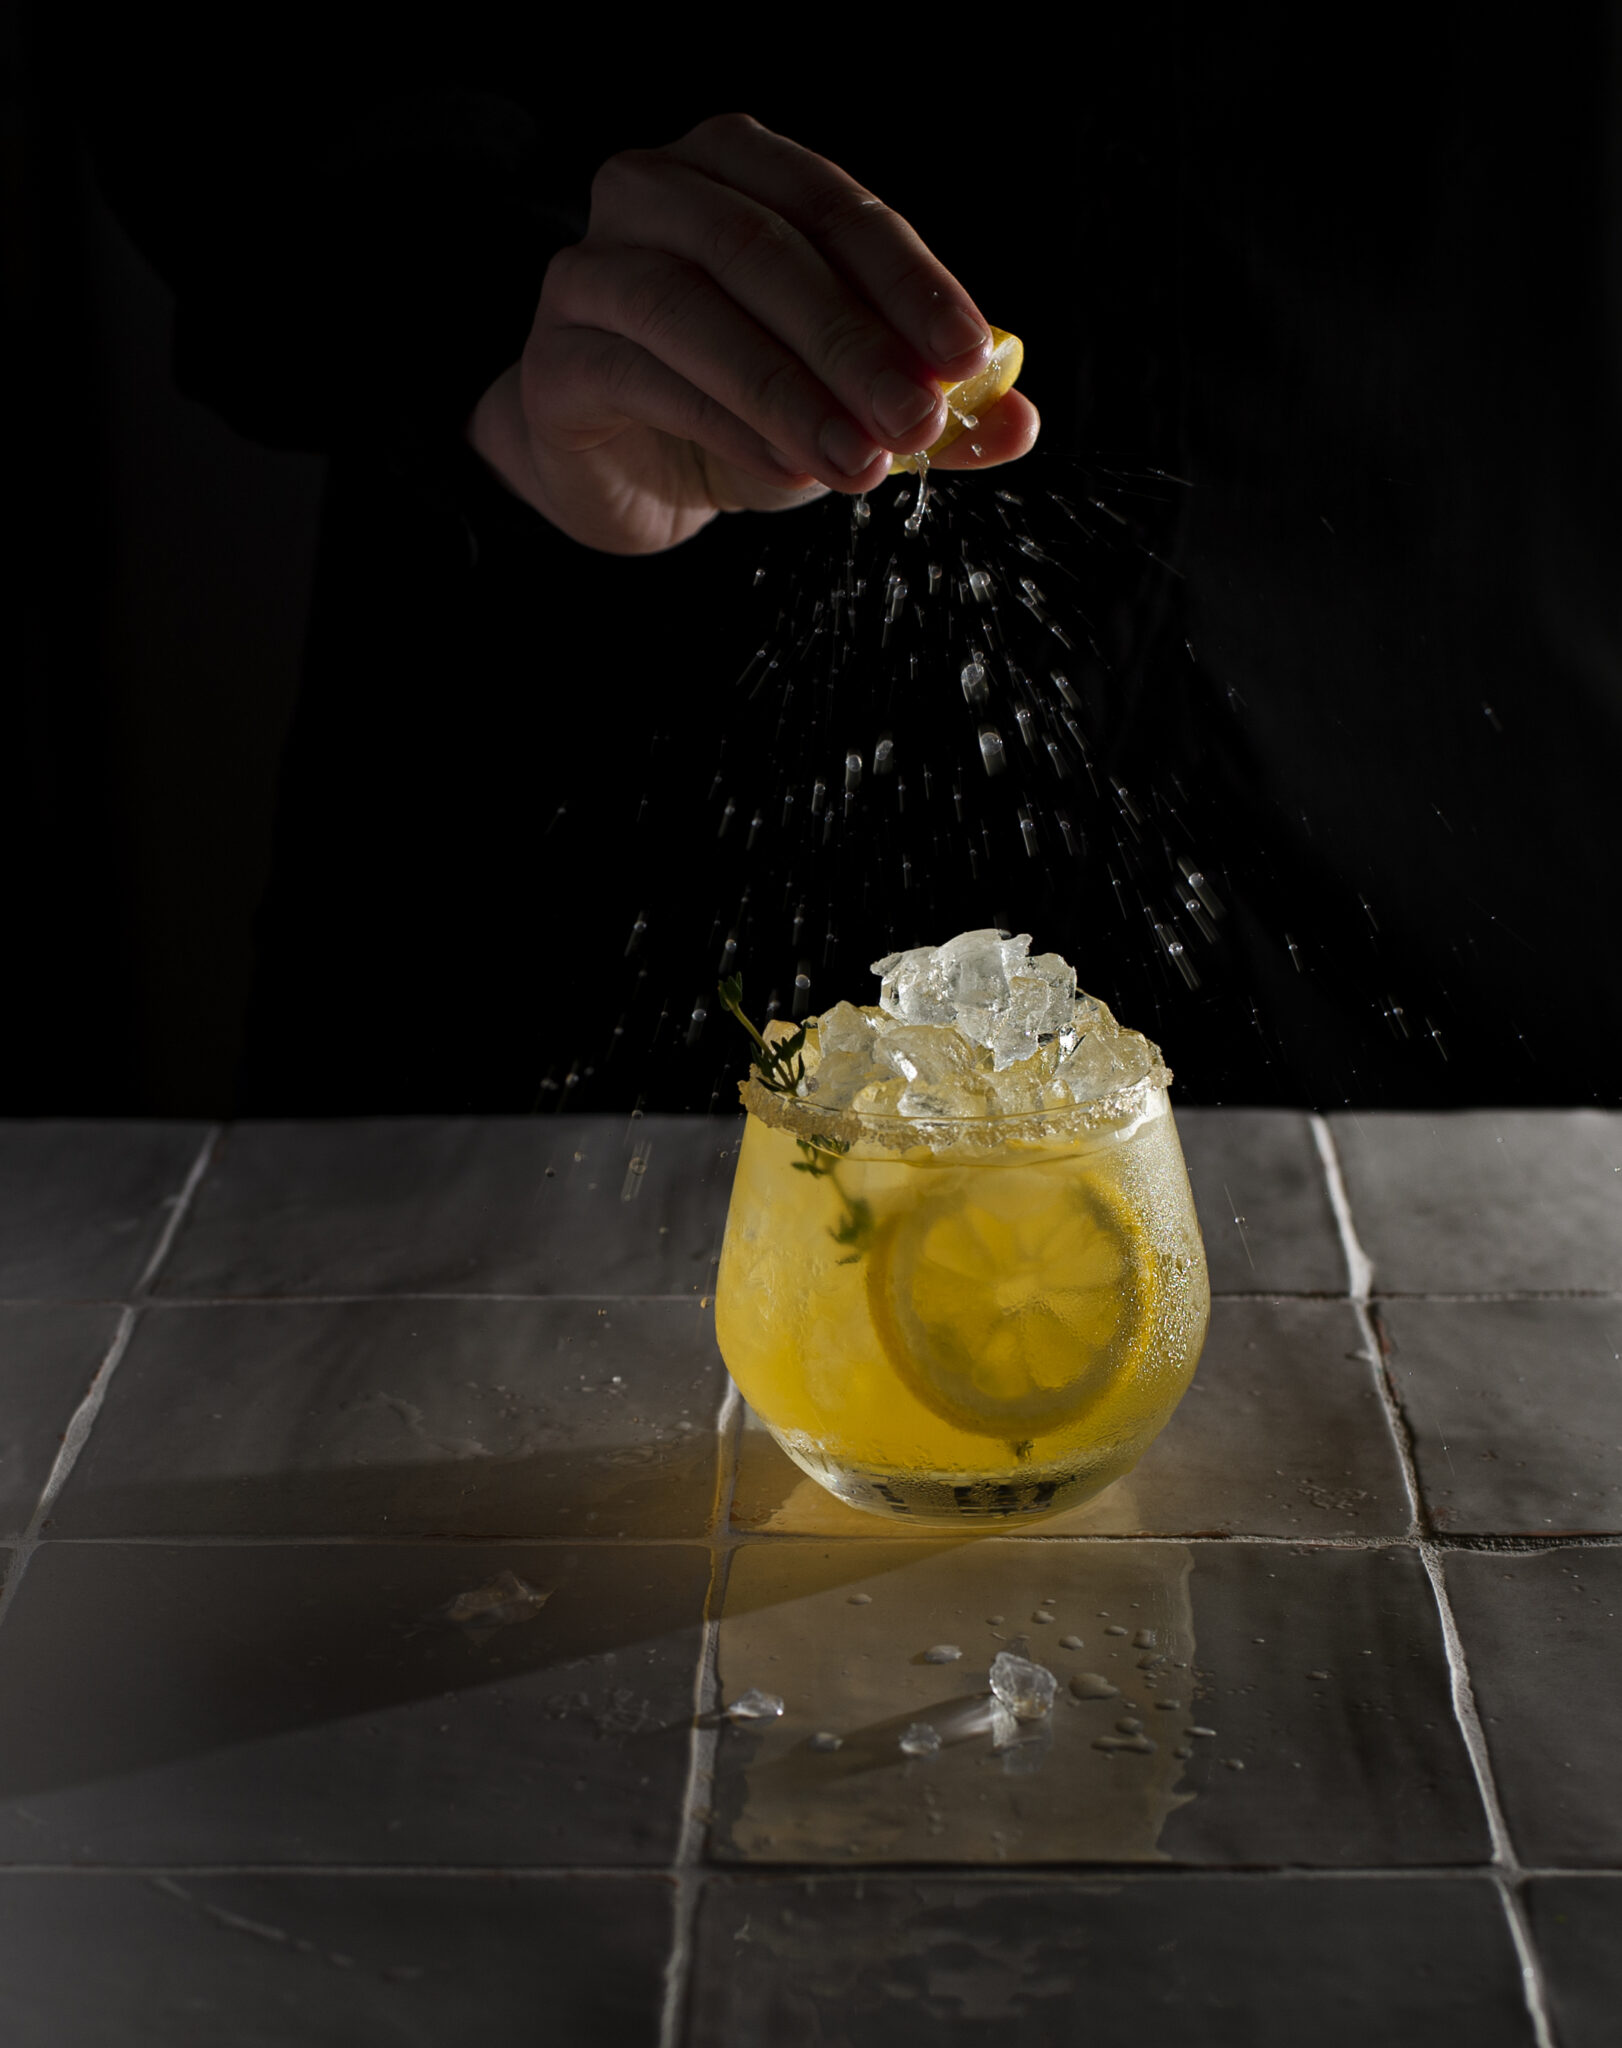 squeezing lemon juice in cocktail